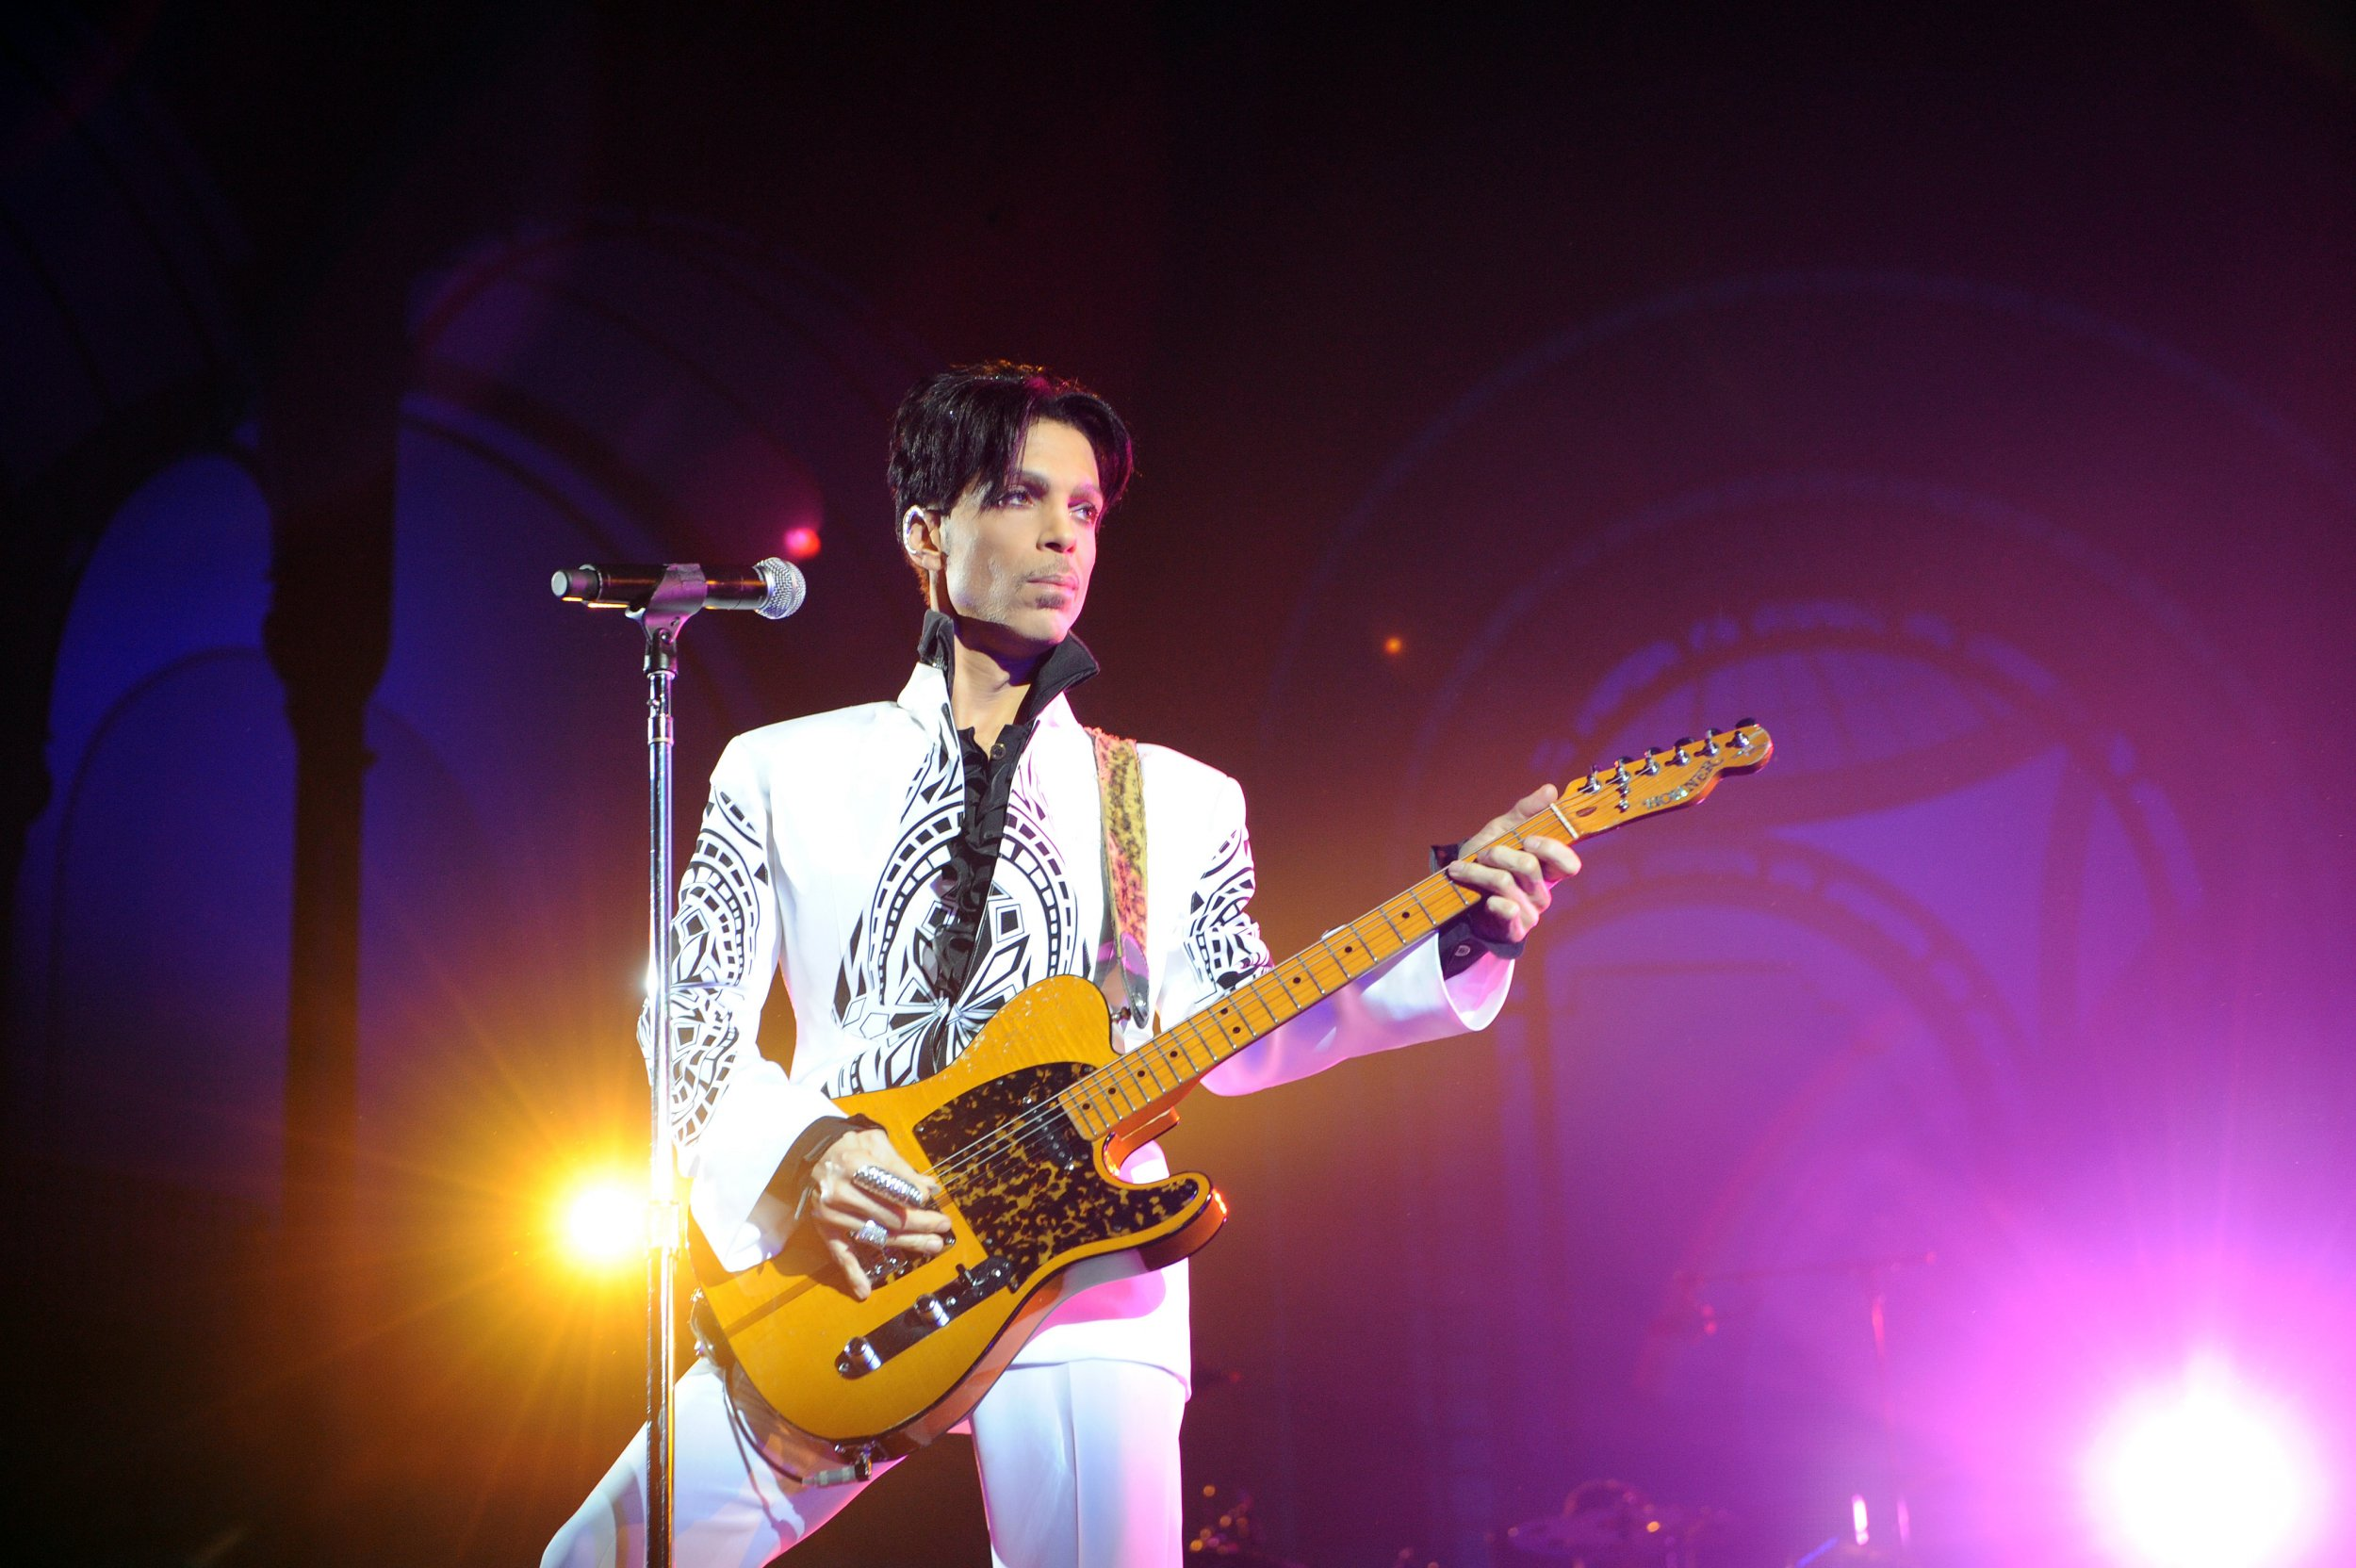 Prince Estate Doesn't Want Trump to Play His Music at Rallies